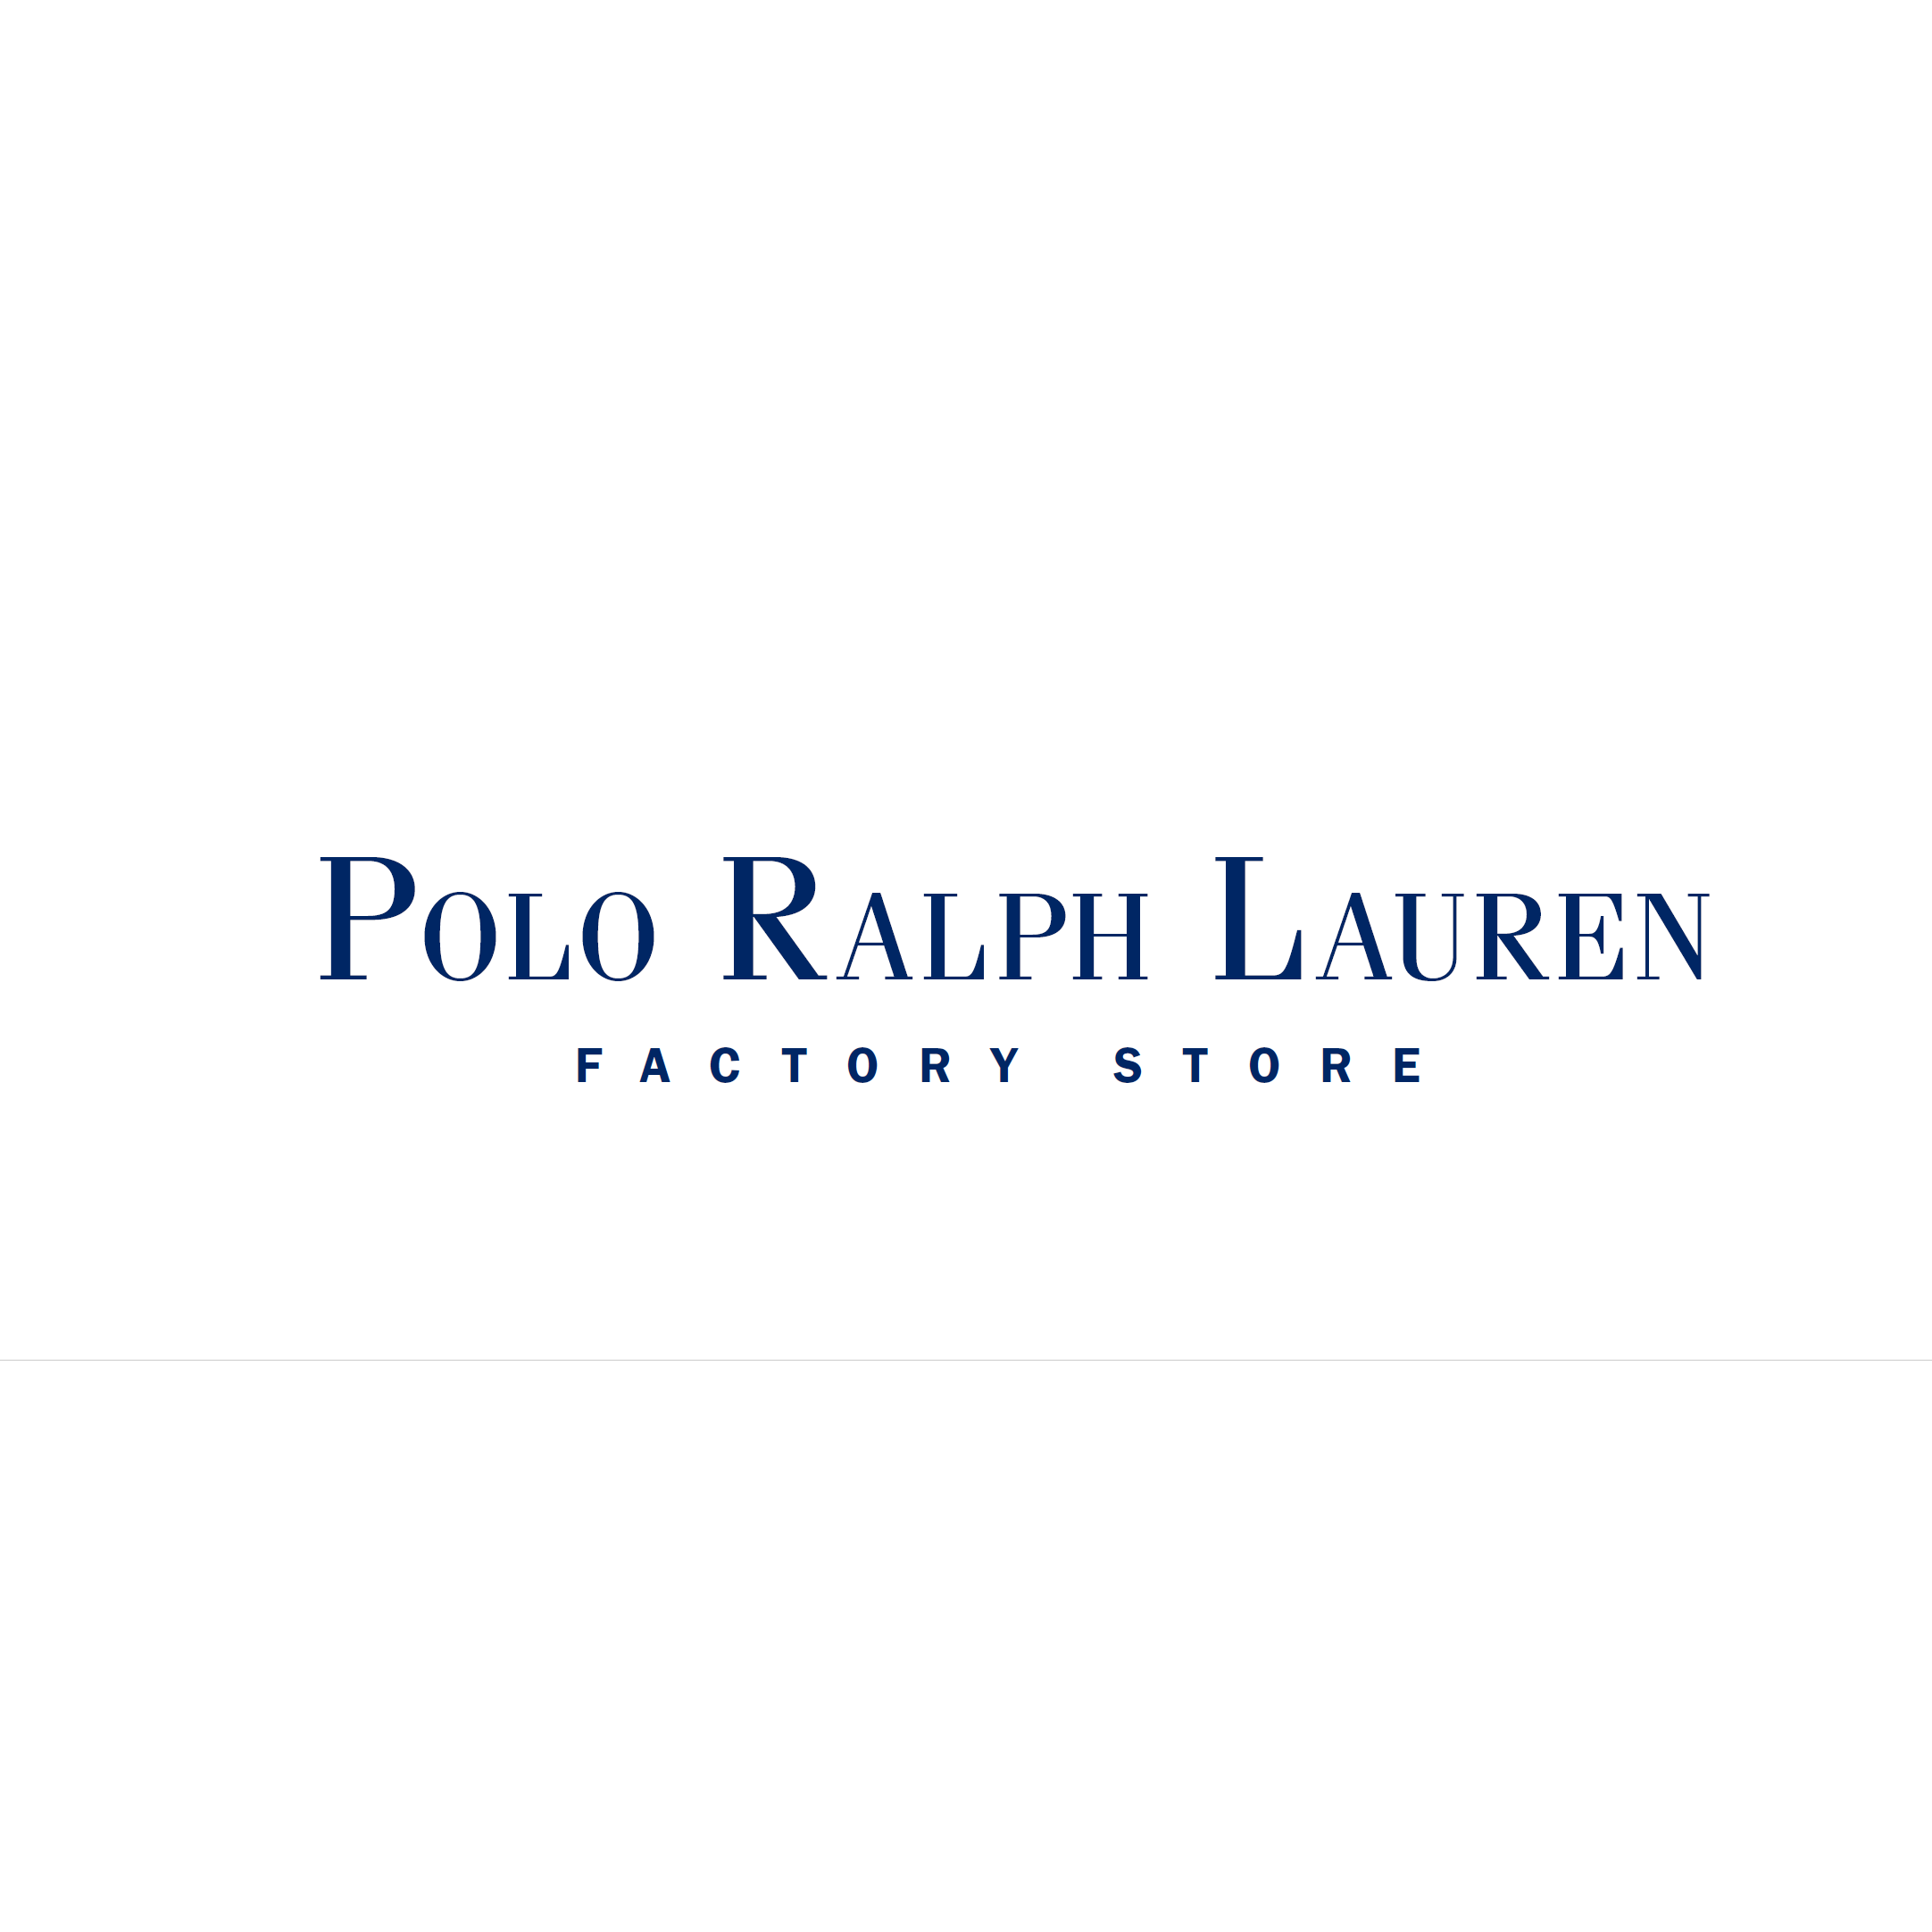 polo ralph lauren factory store hershey pennsylvania pa. Black Bedroom Furniture Sets. Home Design Ideas